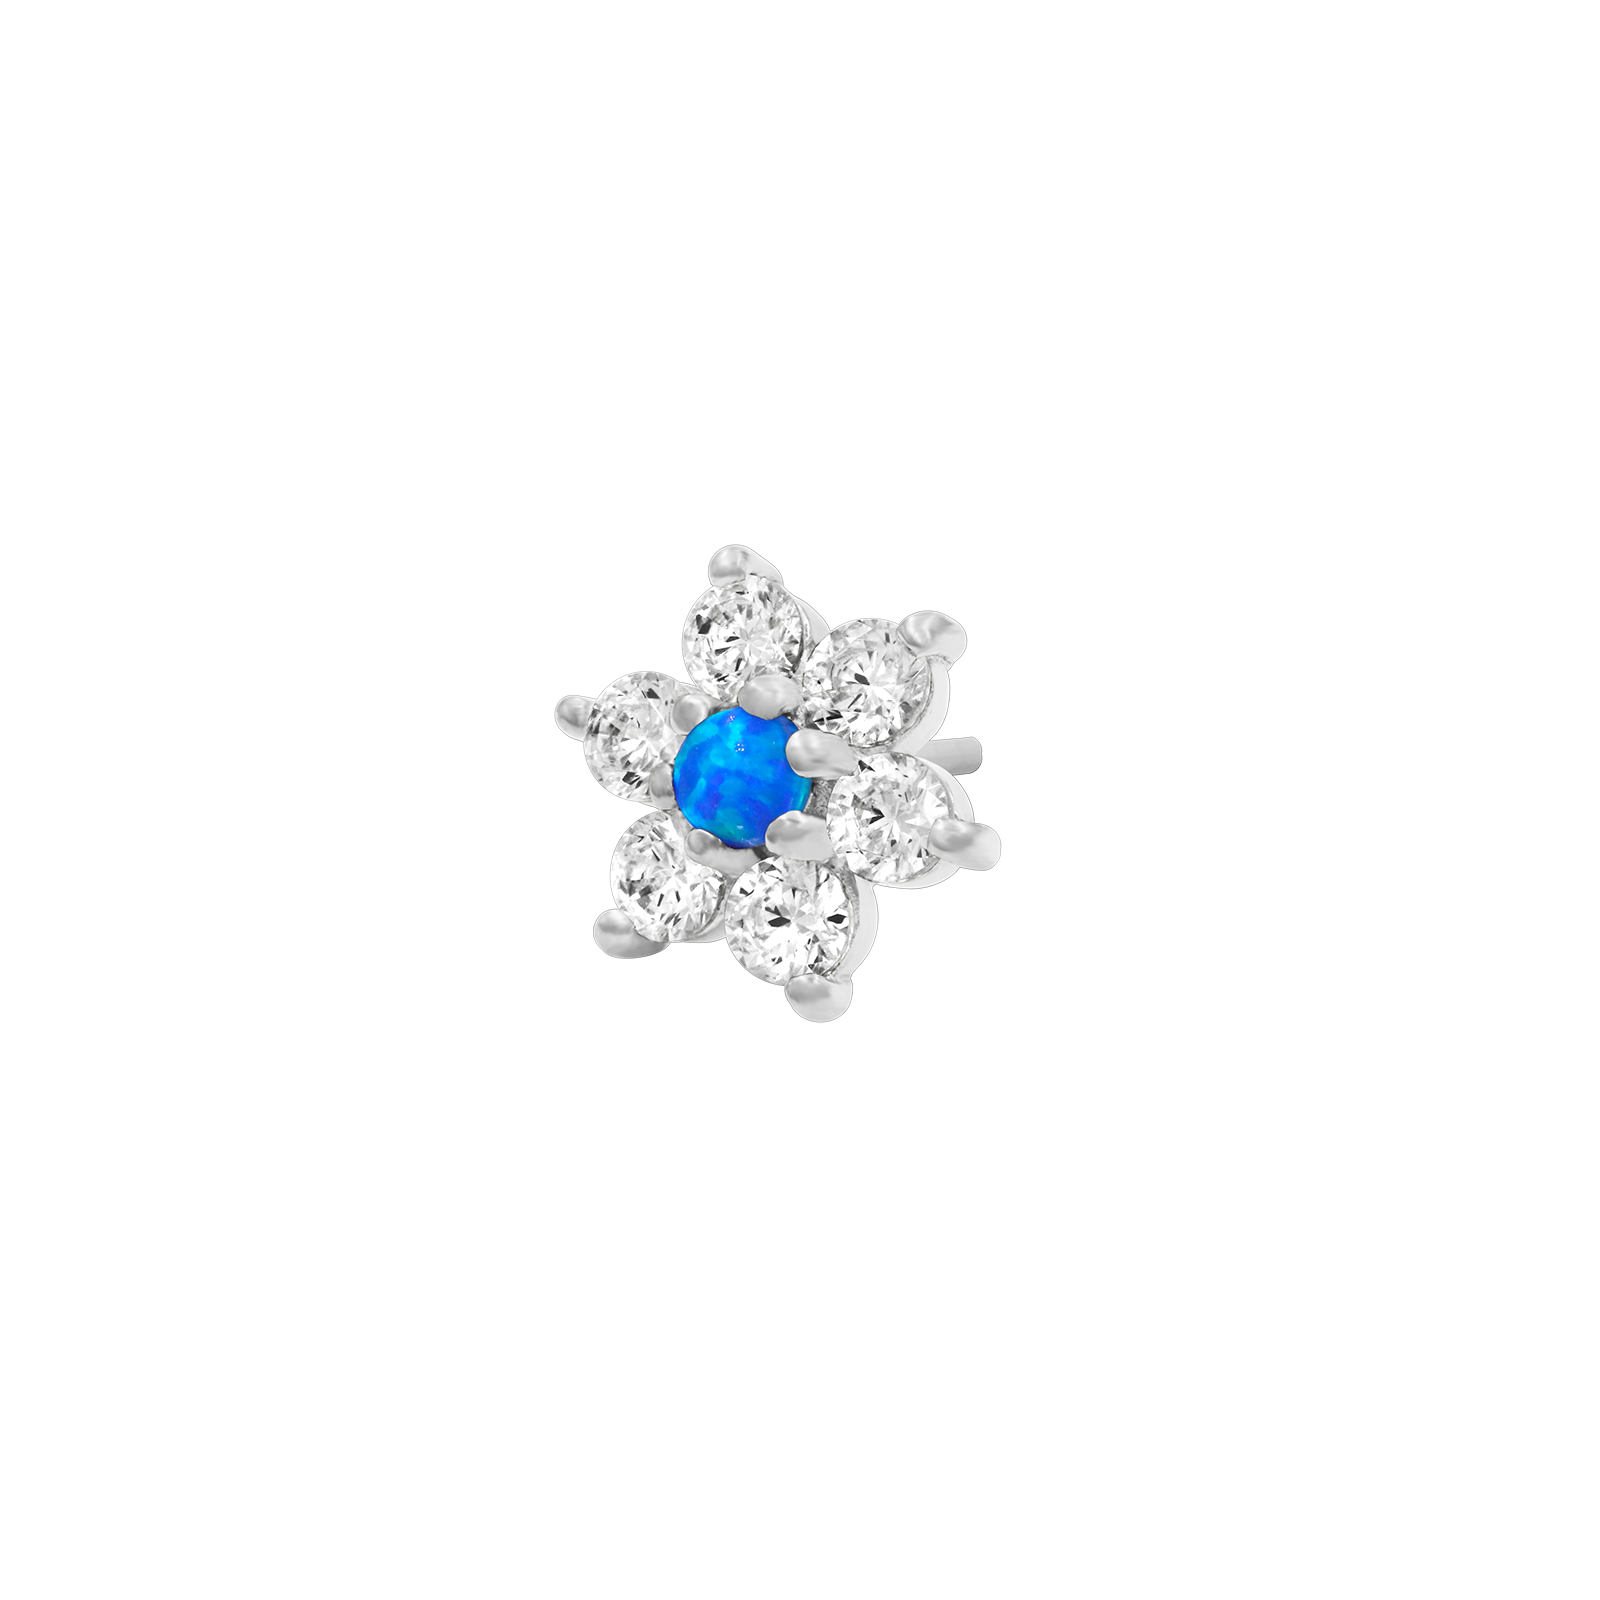 14ct White Gold Flower with Swarovski & Blue Opal - Isha Body Jewellery